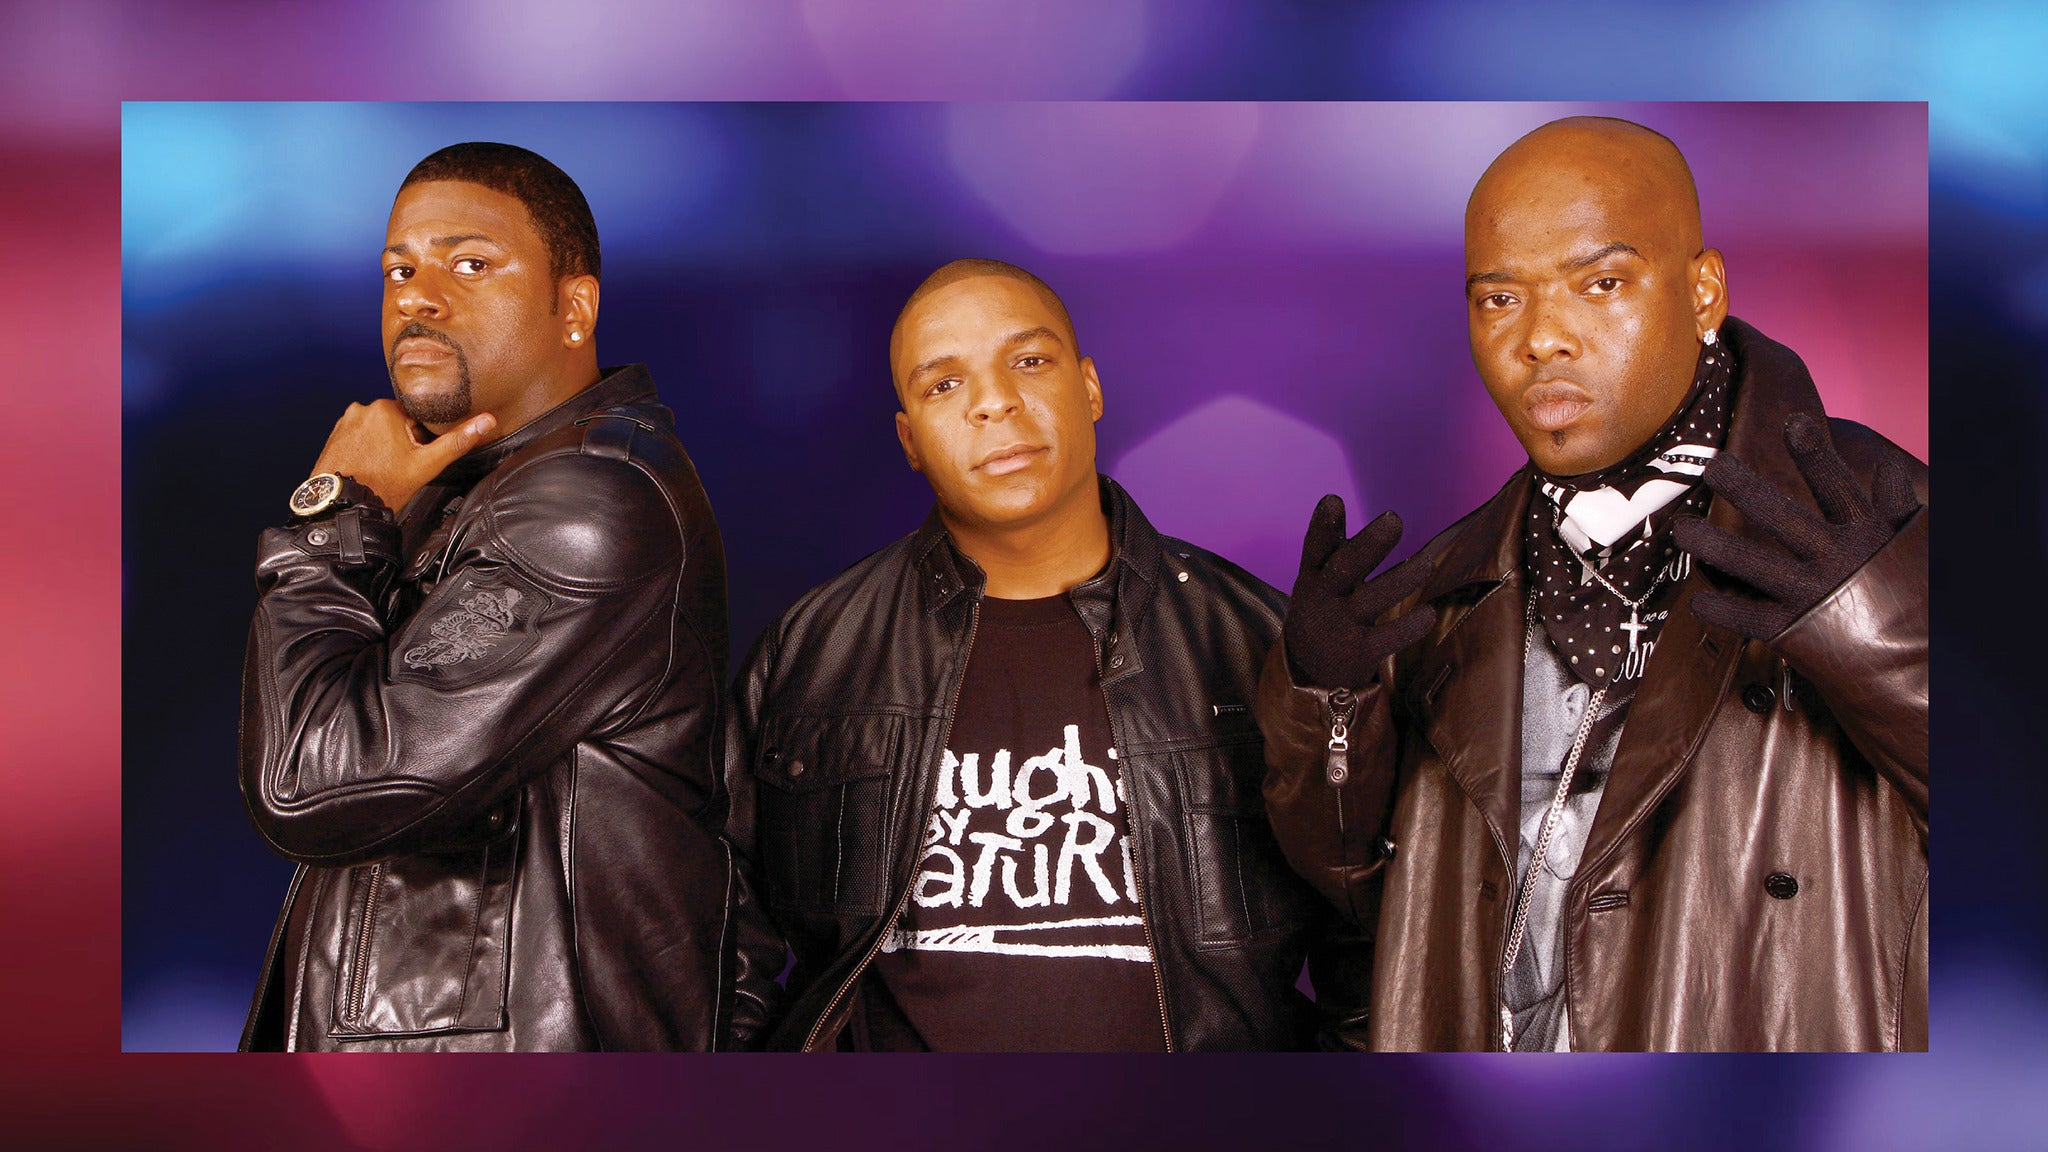 Naughty By Nature Meet & Greet Upgrade Package at Shank Hall - Milwaukee, WI 53202